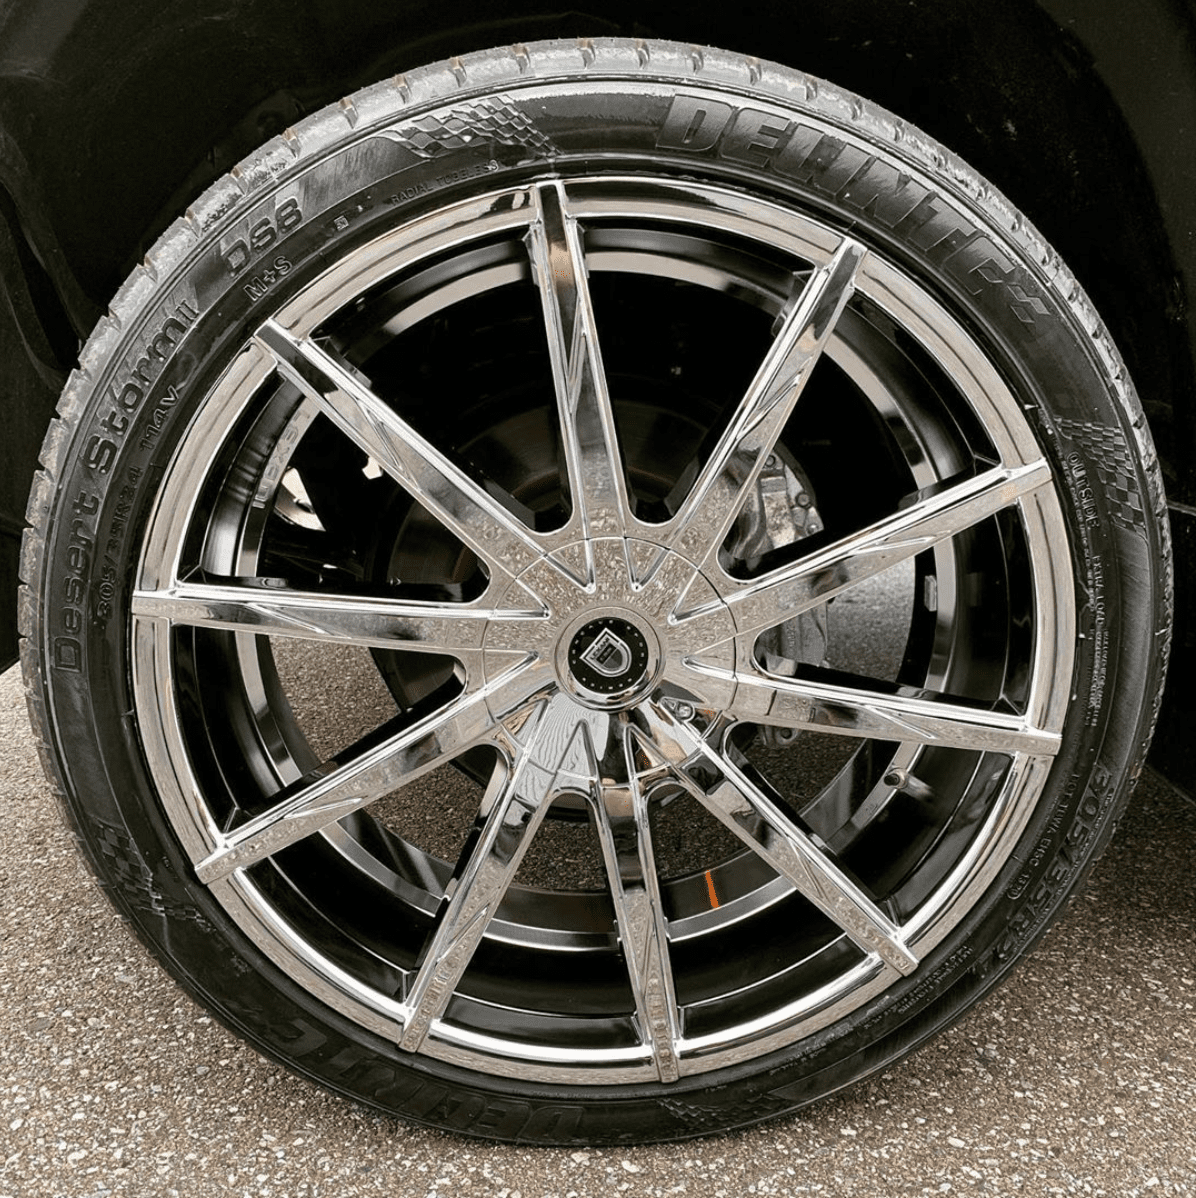 Can Cleaning Your Wheels Damage Them?